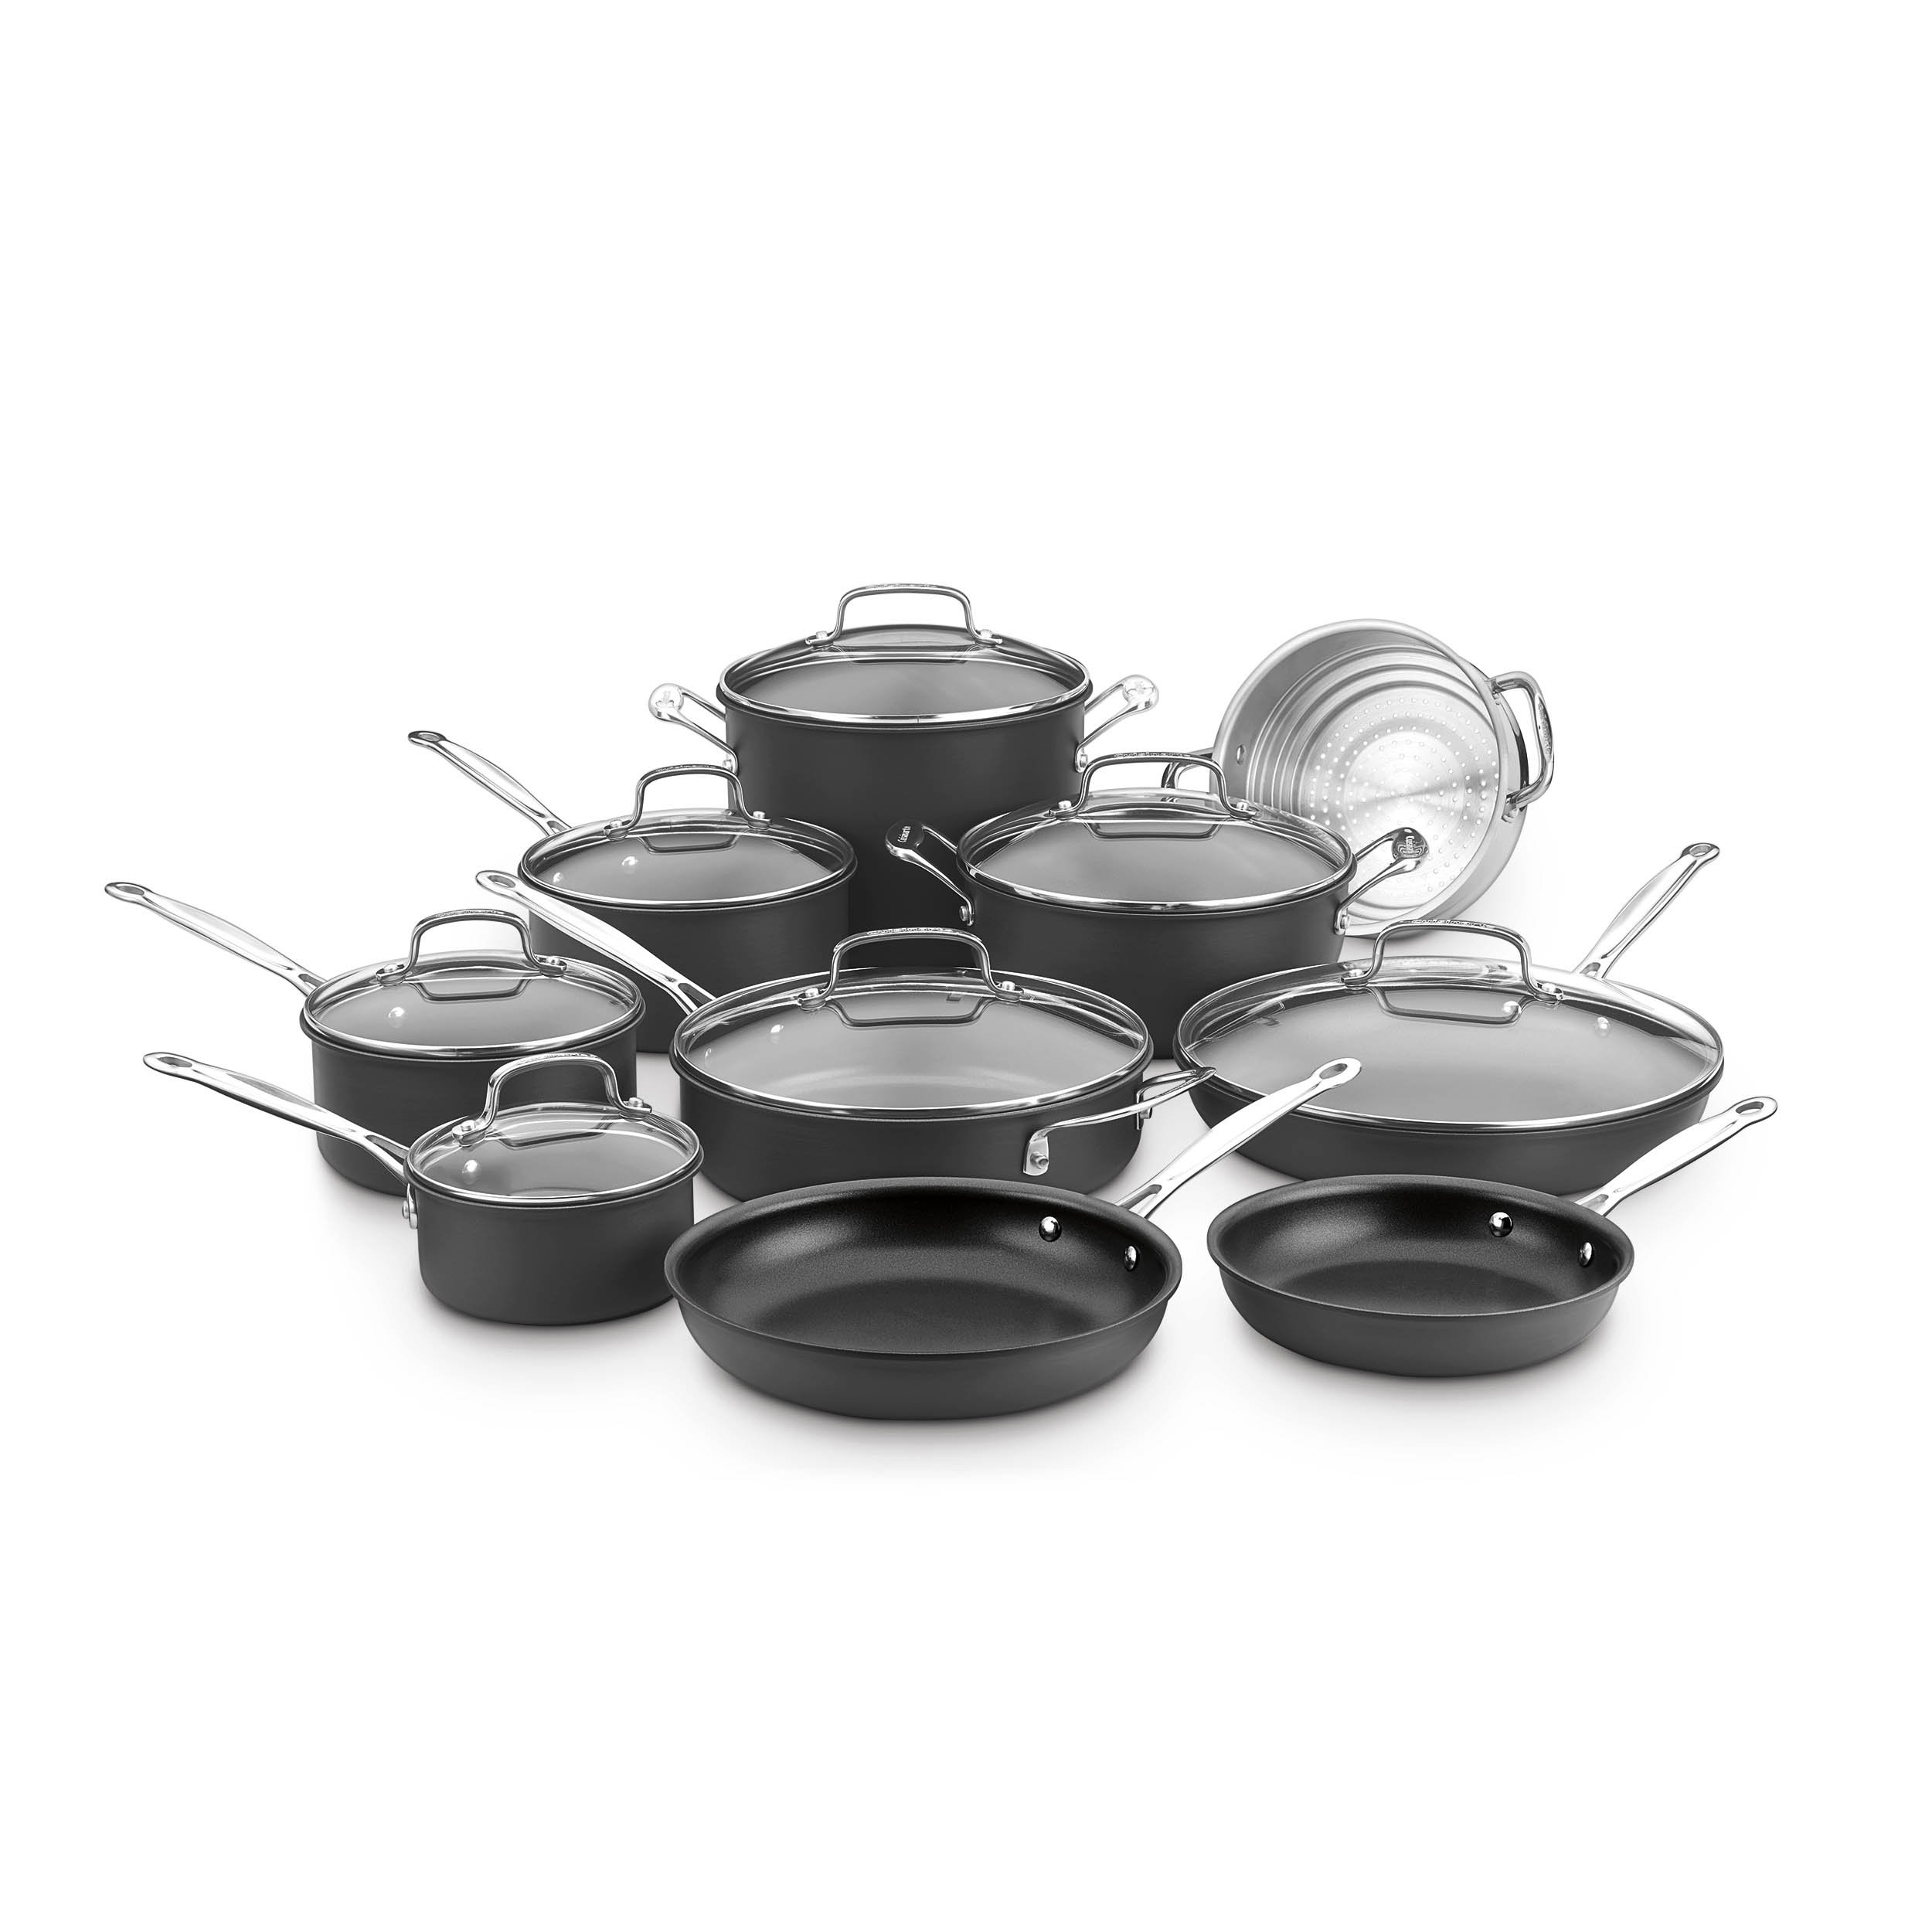 Cuisinart 66-17N Chef's Classic Non-Stick Hard Anodized, 17 Piece Set, Black by Cuisinart